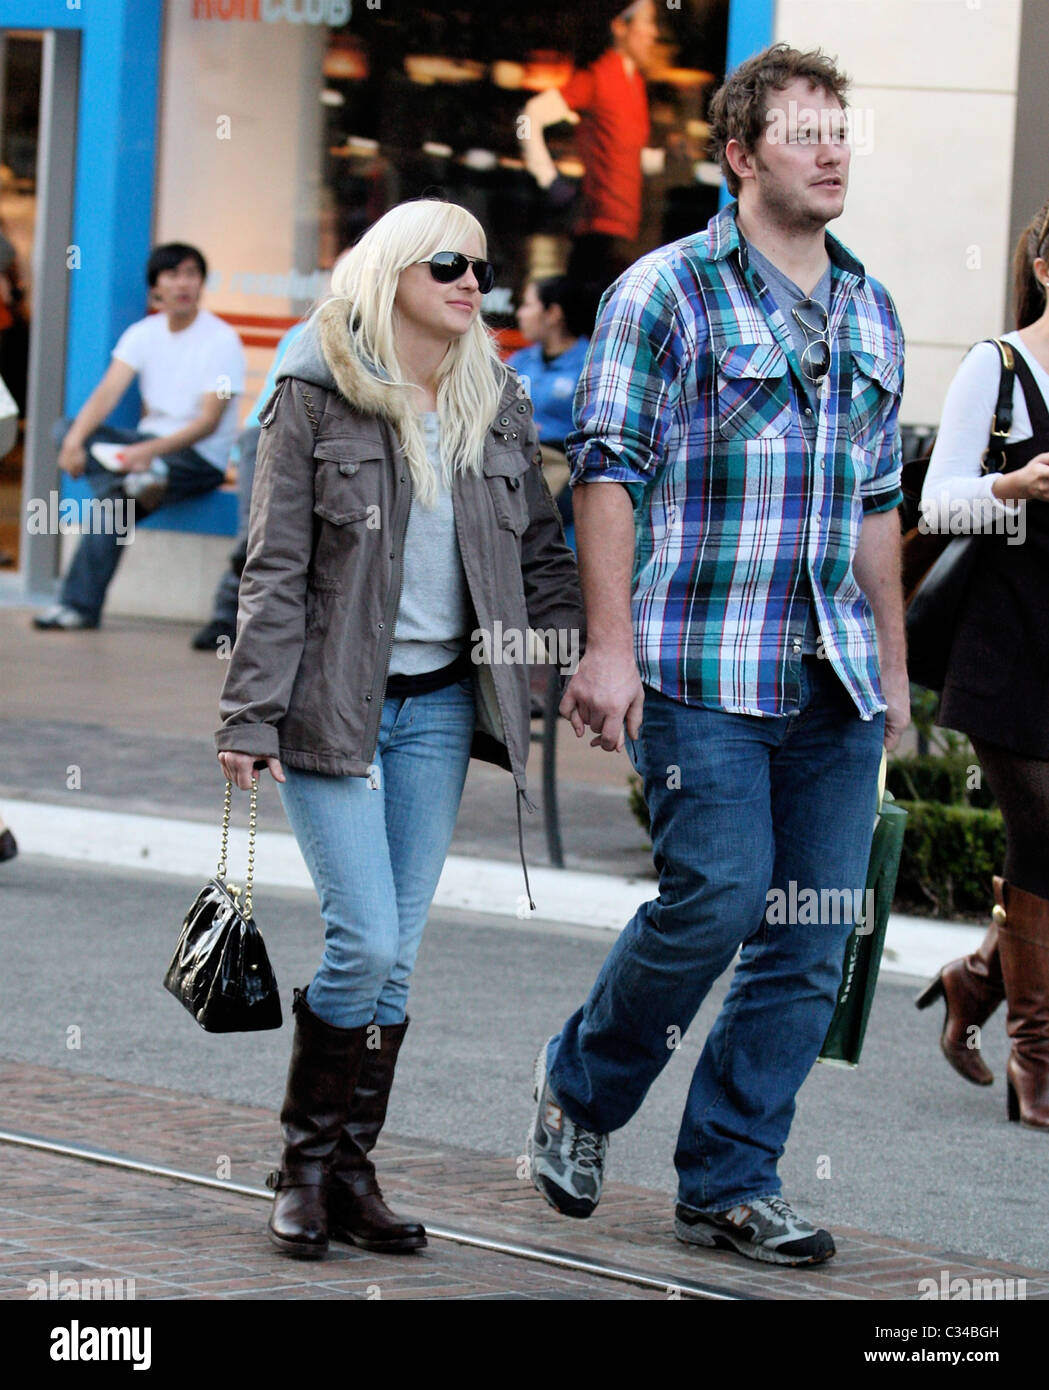 * ANNA FARIS TO WED Actress ANNA FARIS is heading down the ...